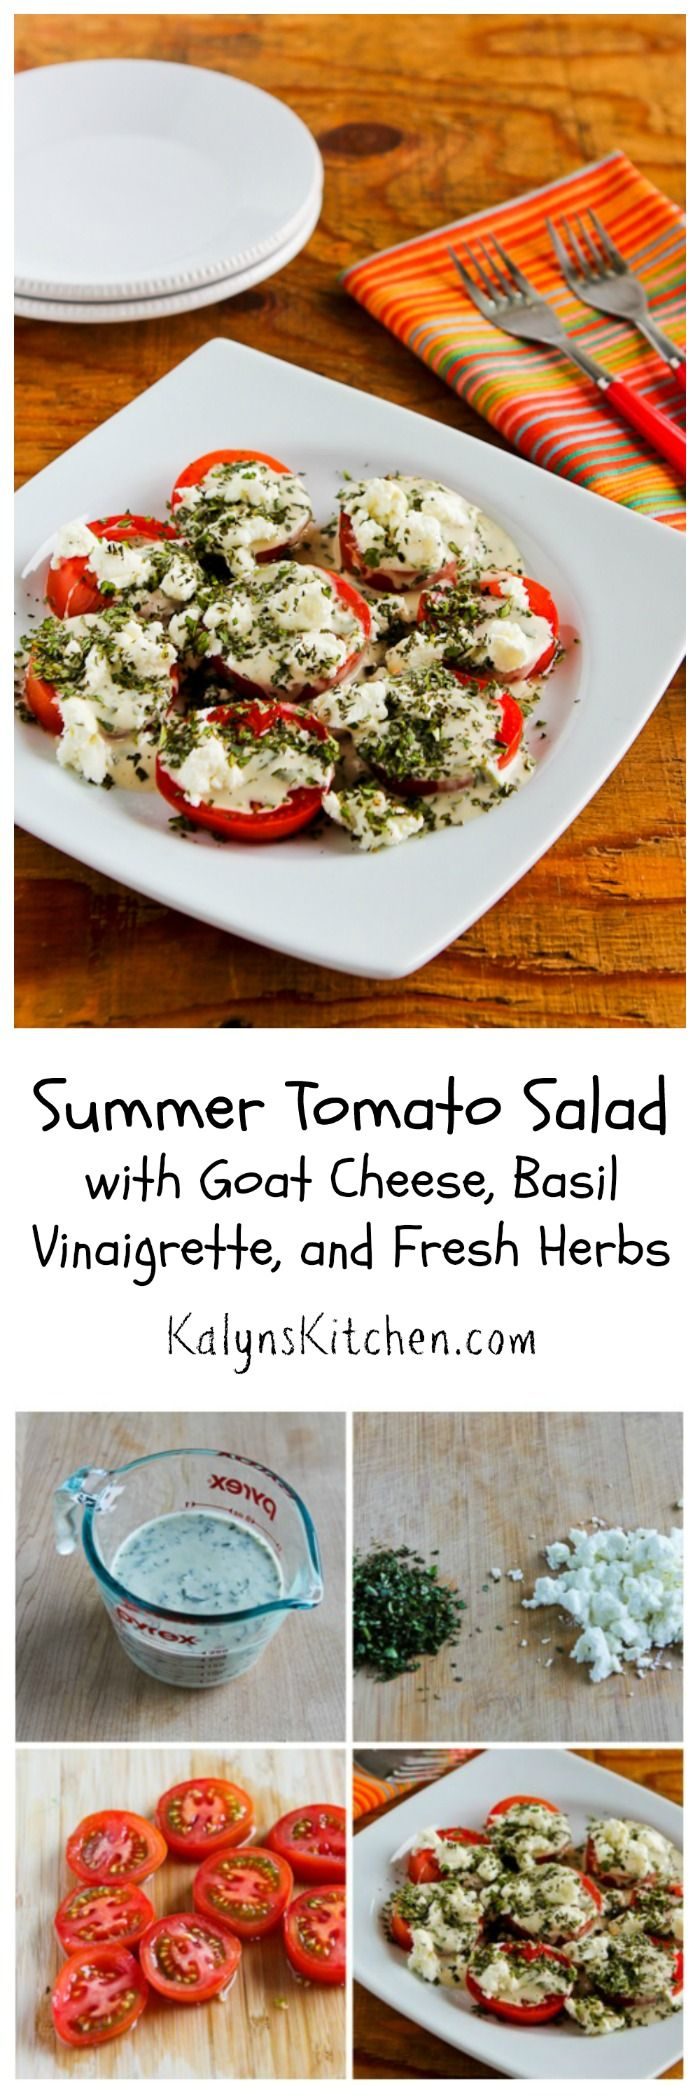 As soon as good summer tomatoes show up I start making this Summer Tomato Salad with Goat Cheese, Basil Vinaigrette, and Fresh Herbs, and I make it all summer long for holiday parties and pot-lucks.  I'd have a hard time picking my very favorite tomato salad, but this is definitely close to the top of the list! #Summer #Tomatoes #Basil [from KalynsKitchen.com]